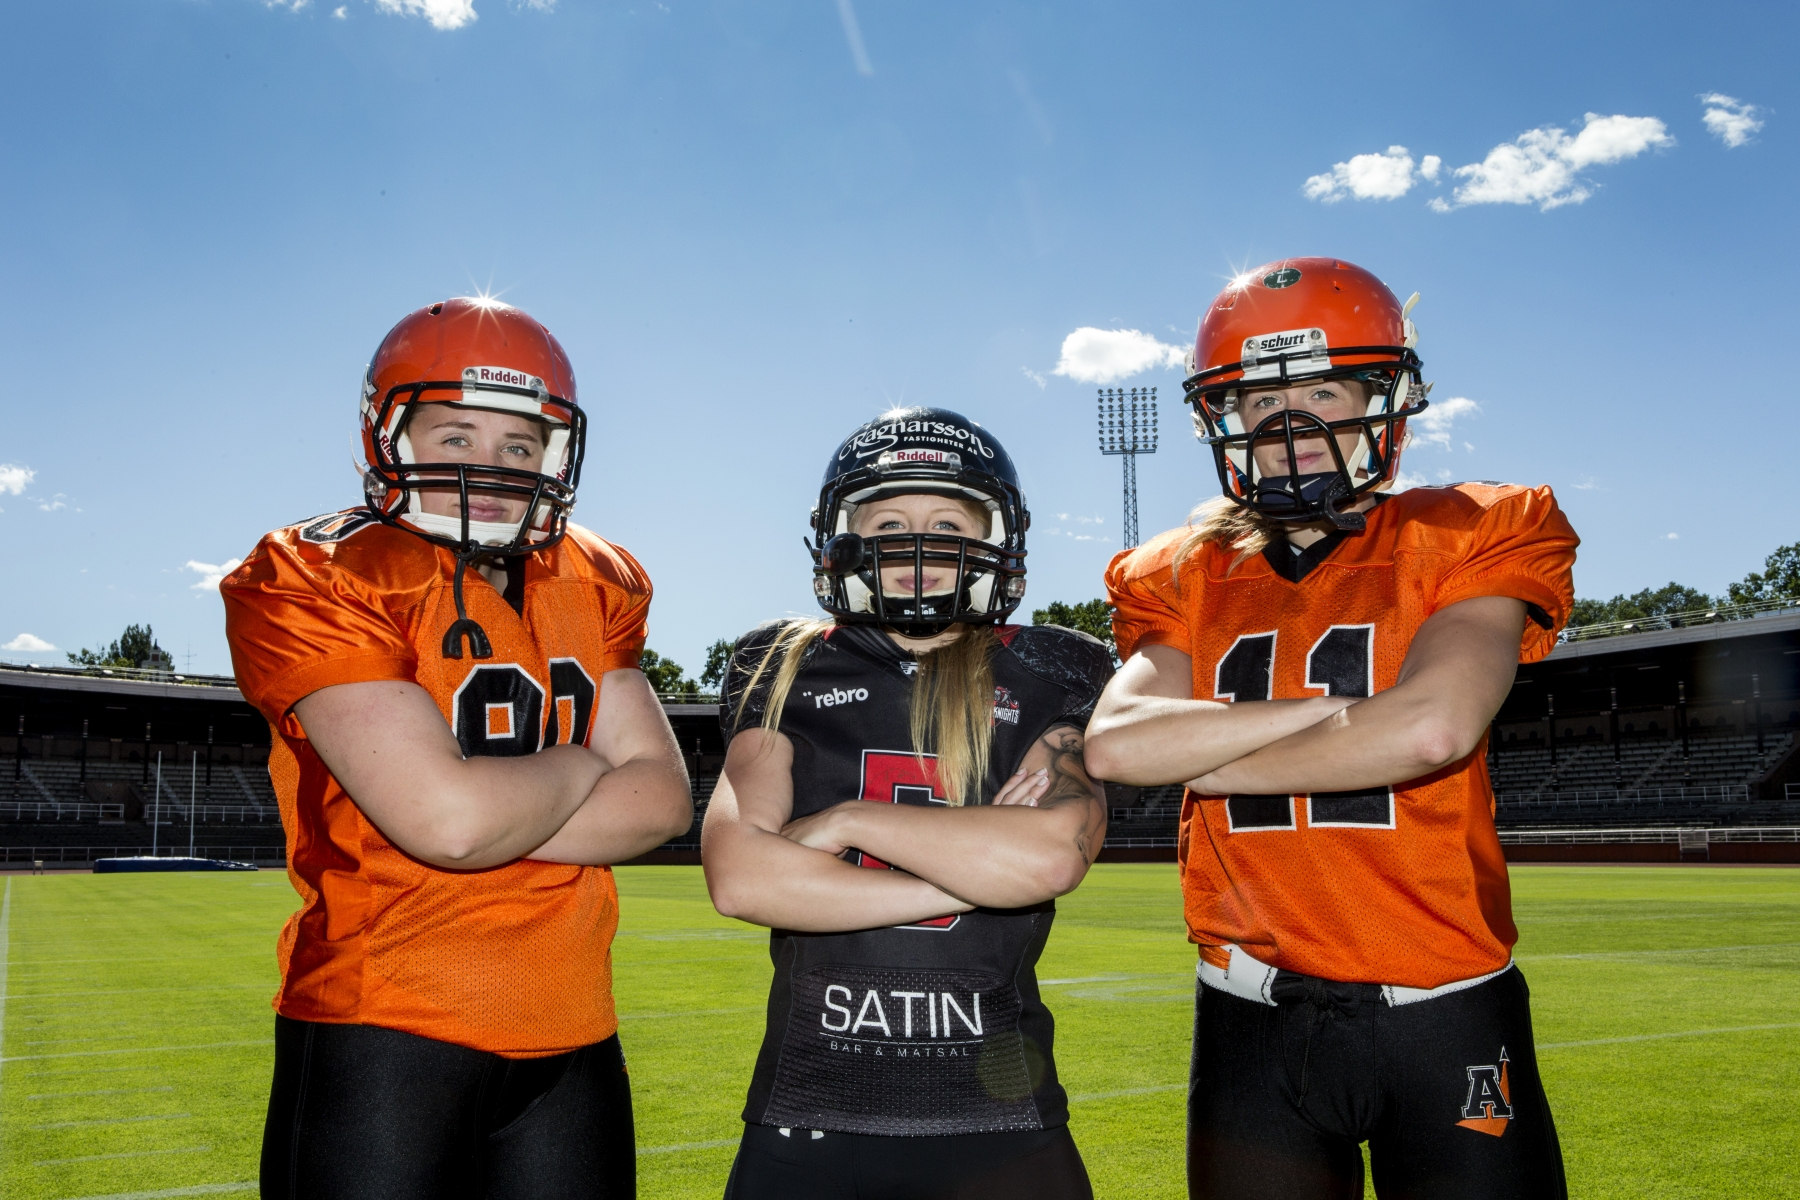 Örebro Black Knights and Arlanda Jets American Football